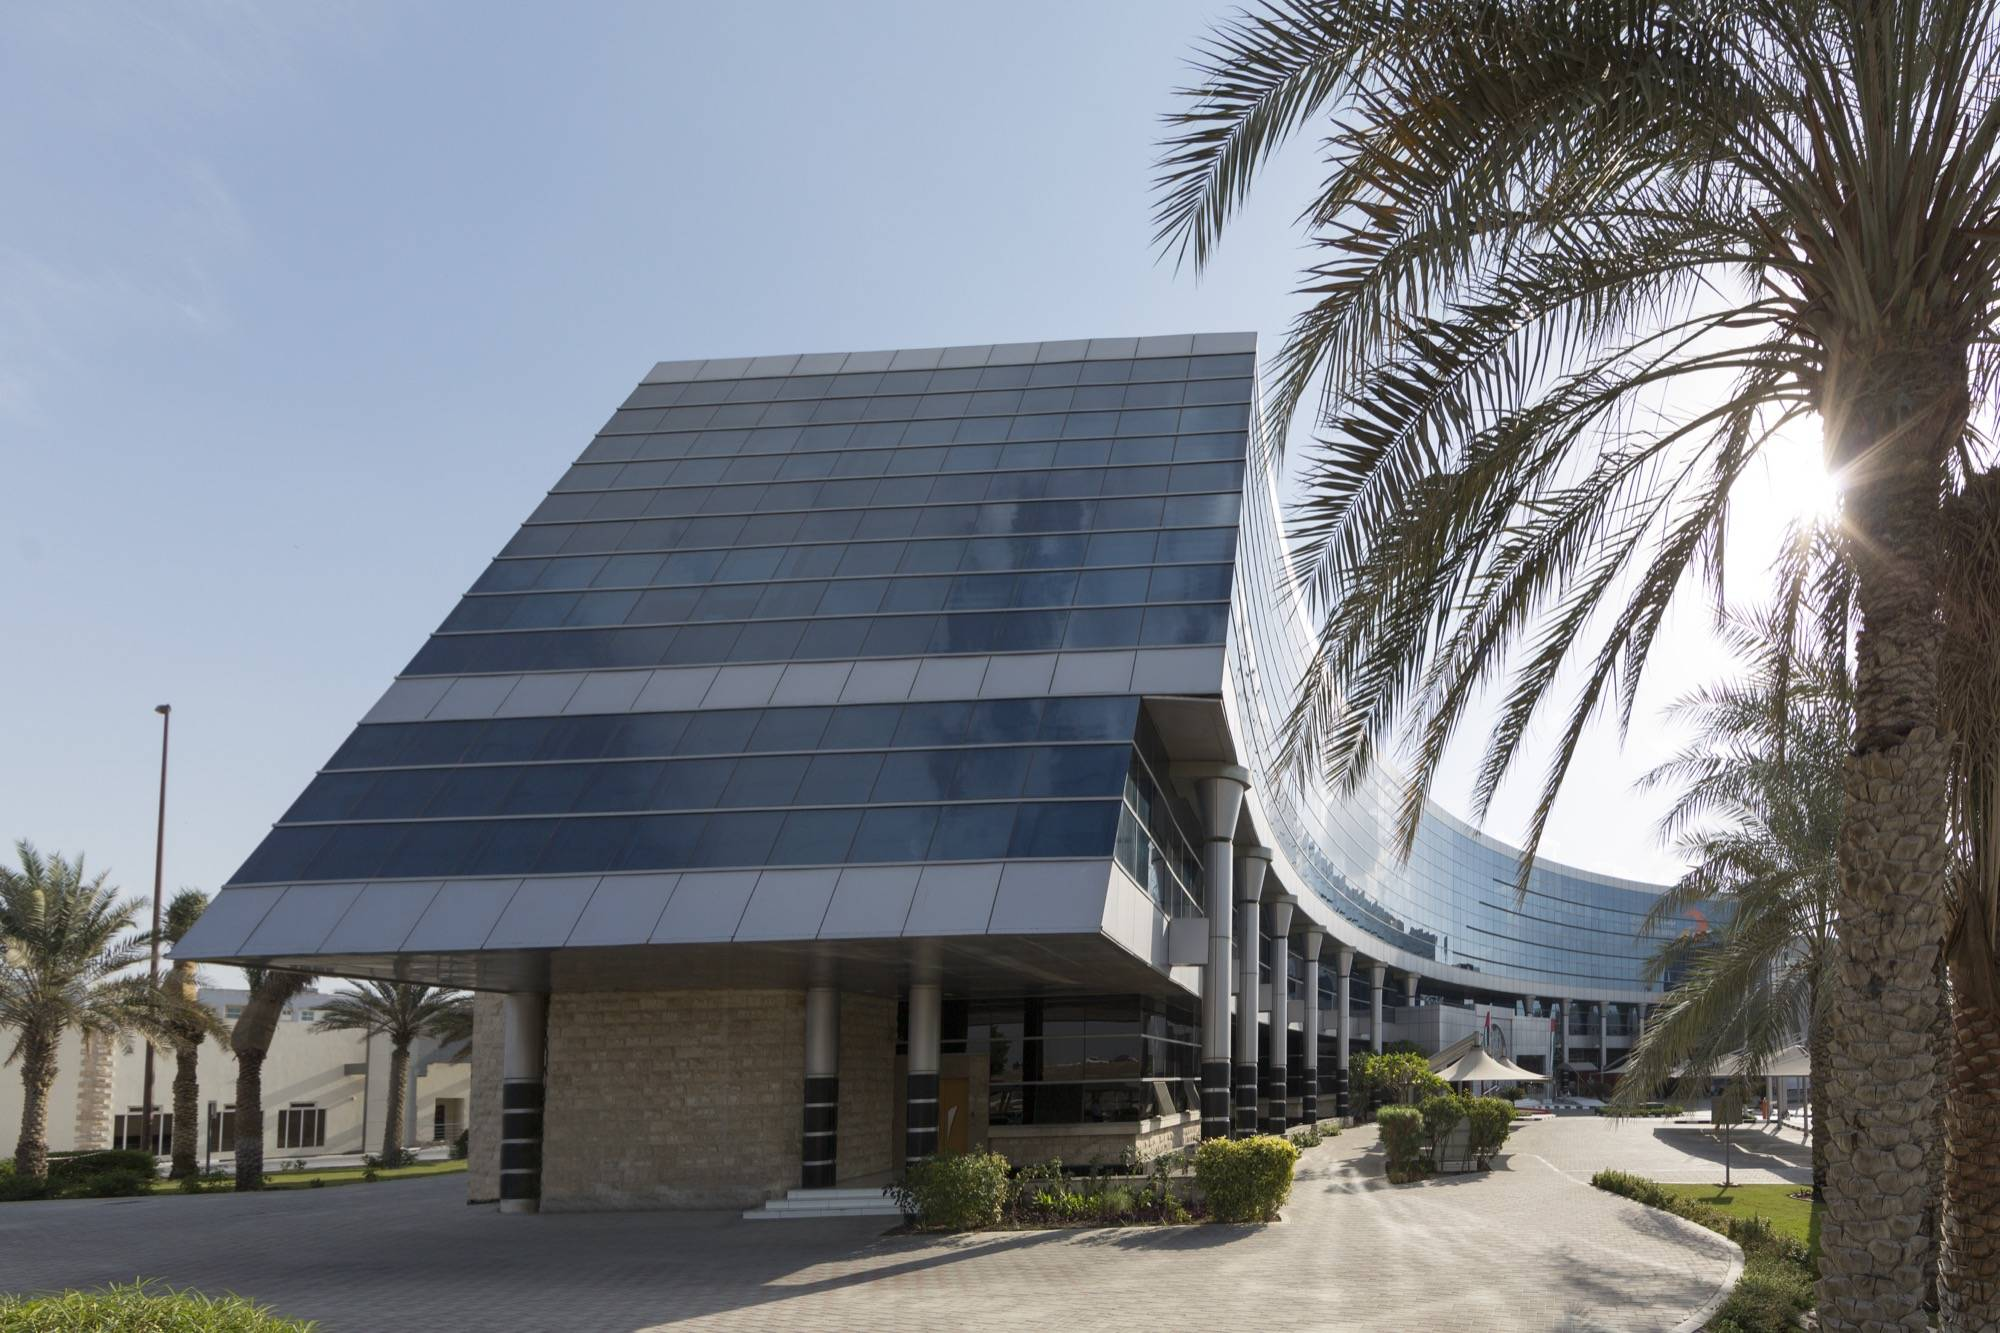 DUBAI TRANSPORT CORPORATION HEADQUARTERS